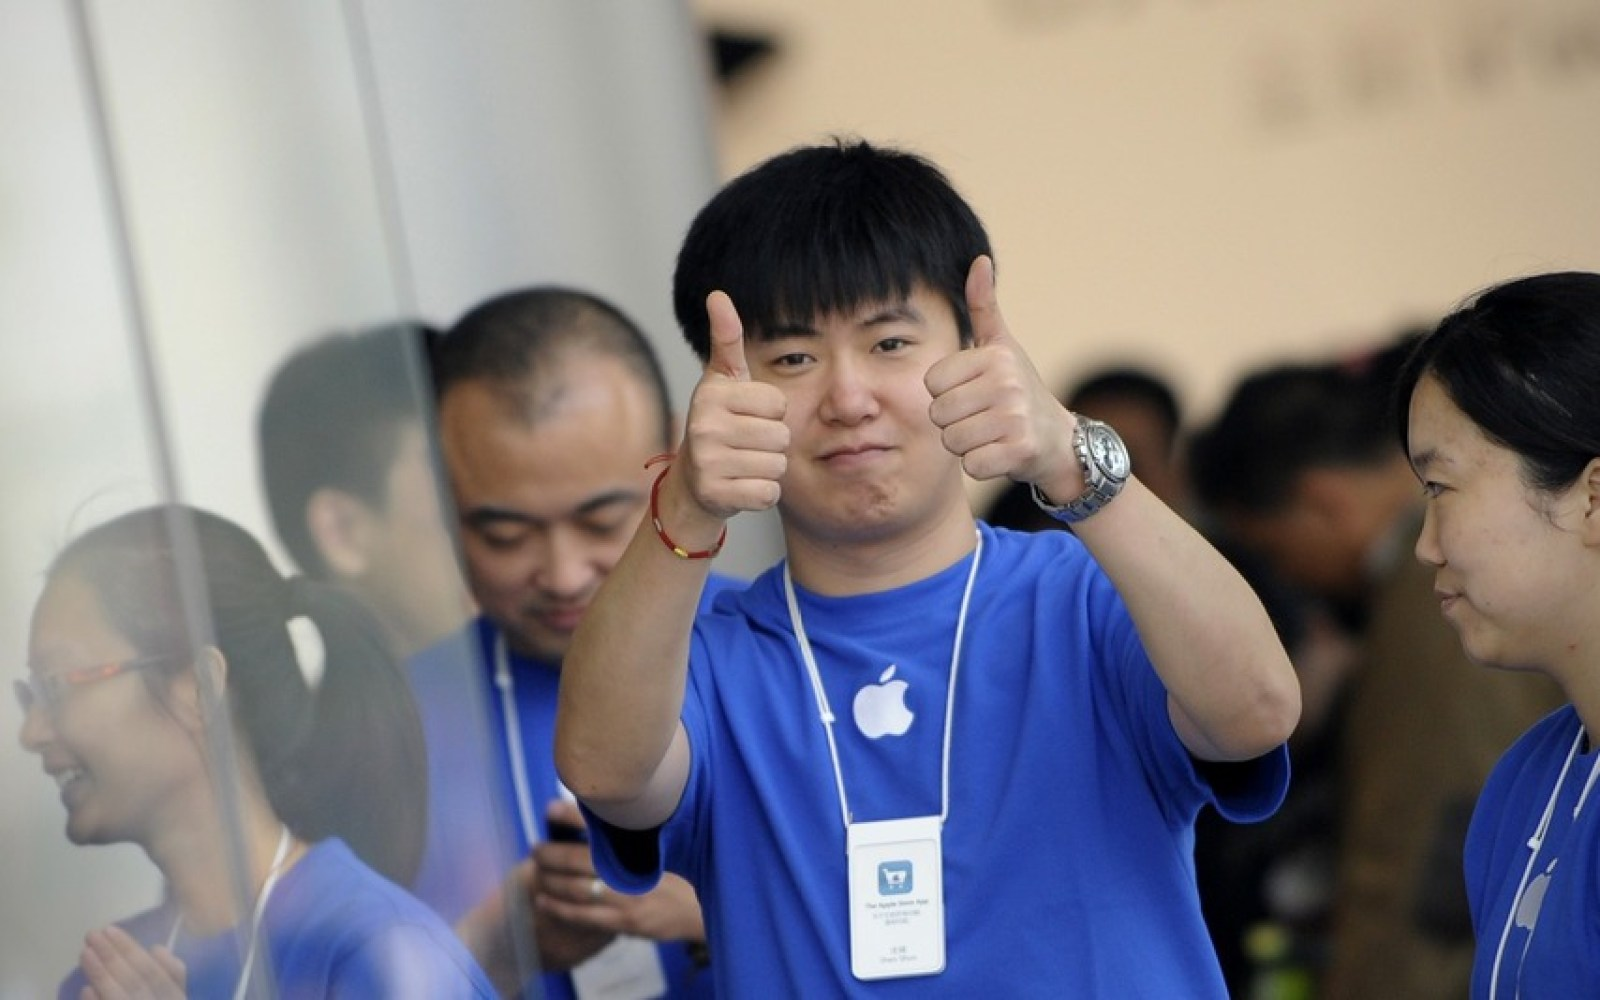 Apple begins hiring for another 3 new retail stores in China